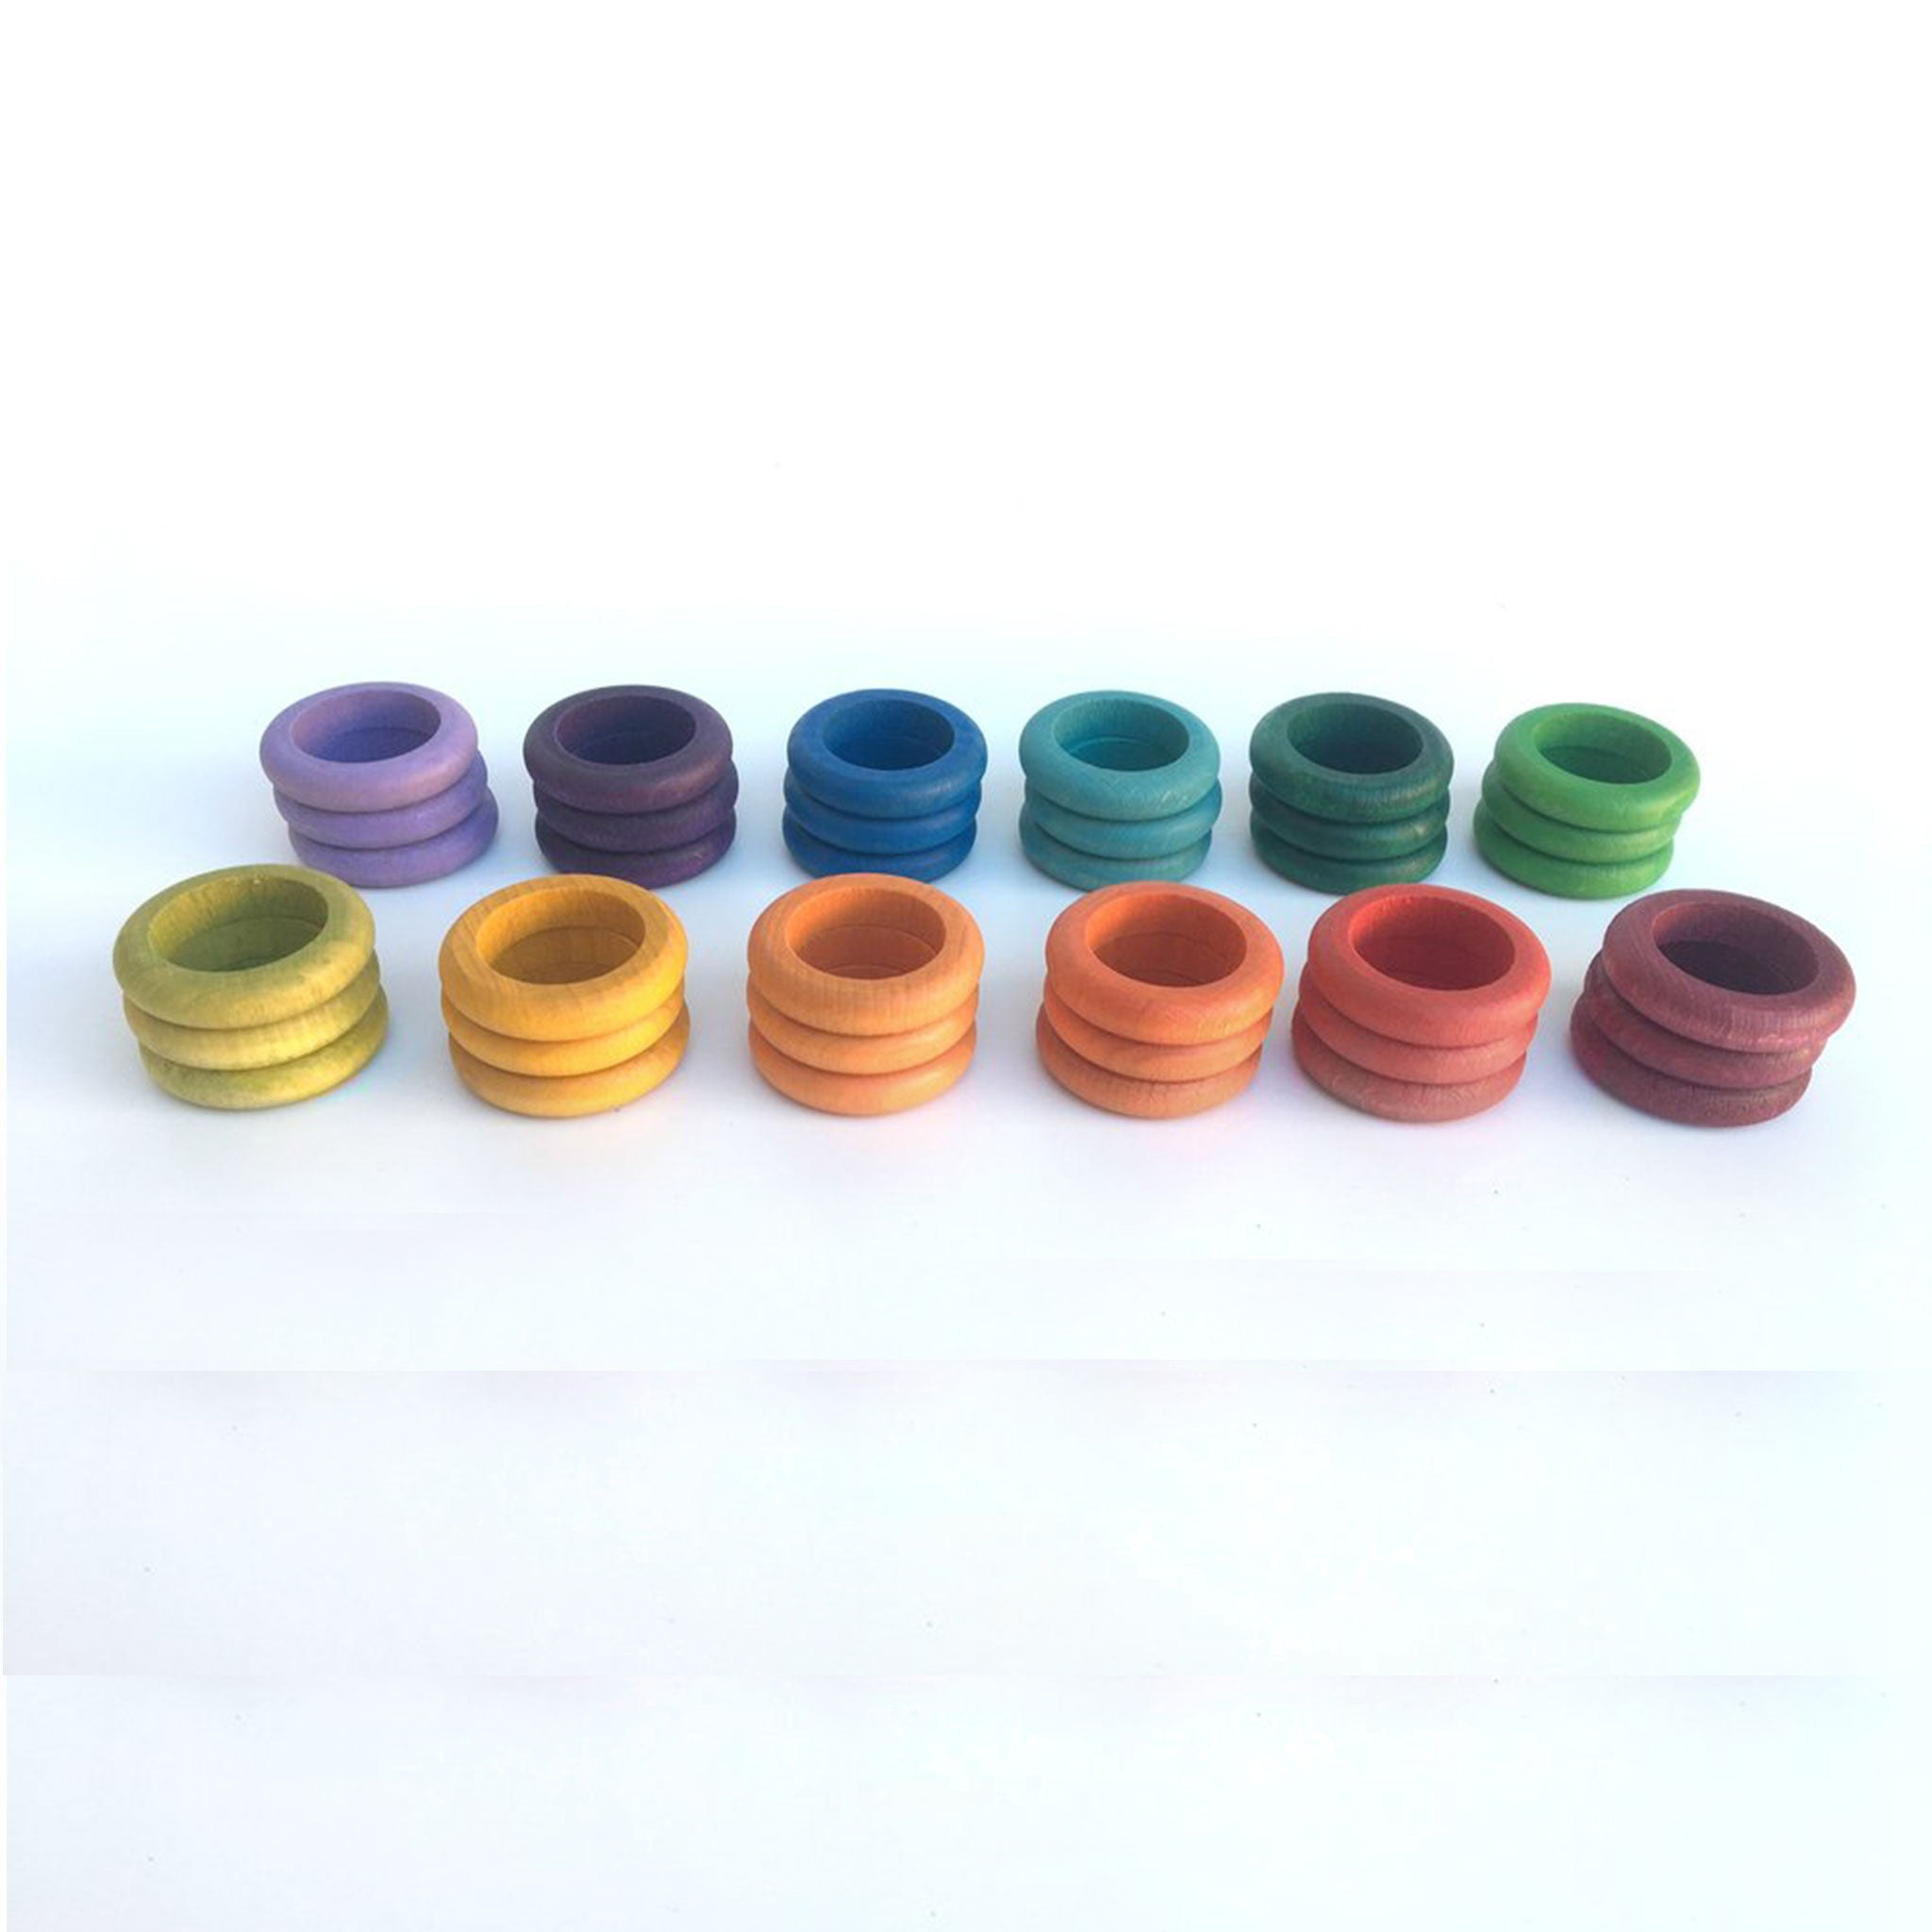 GRAPAT | Coloured Rings | 36 Rings in 12 Colours